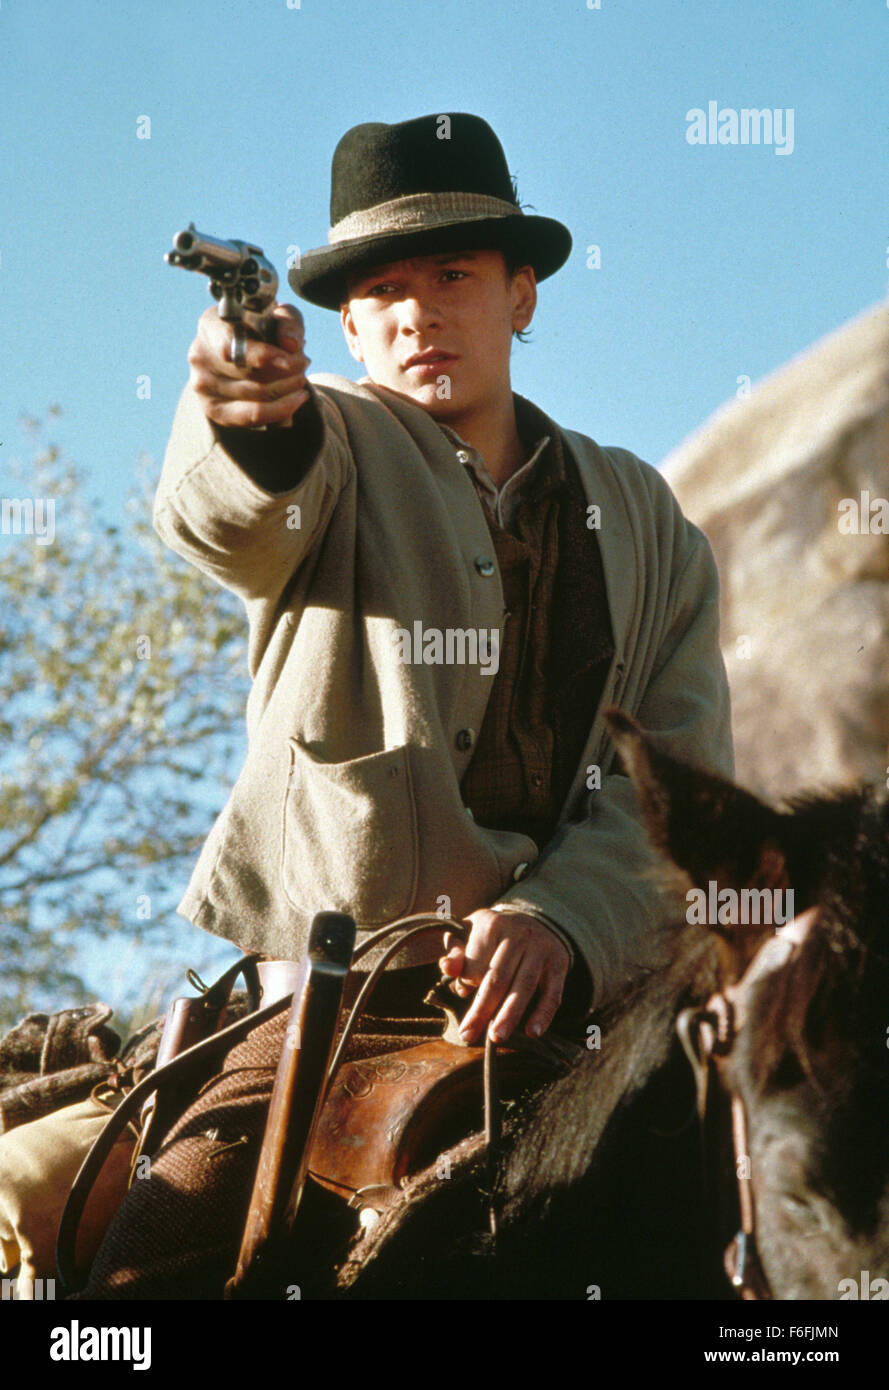 RELEASE DATE: August 01, 1990 MOVIE TITLE: Young Guns II ...